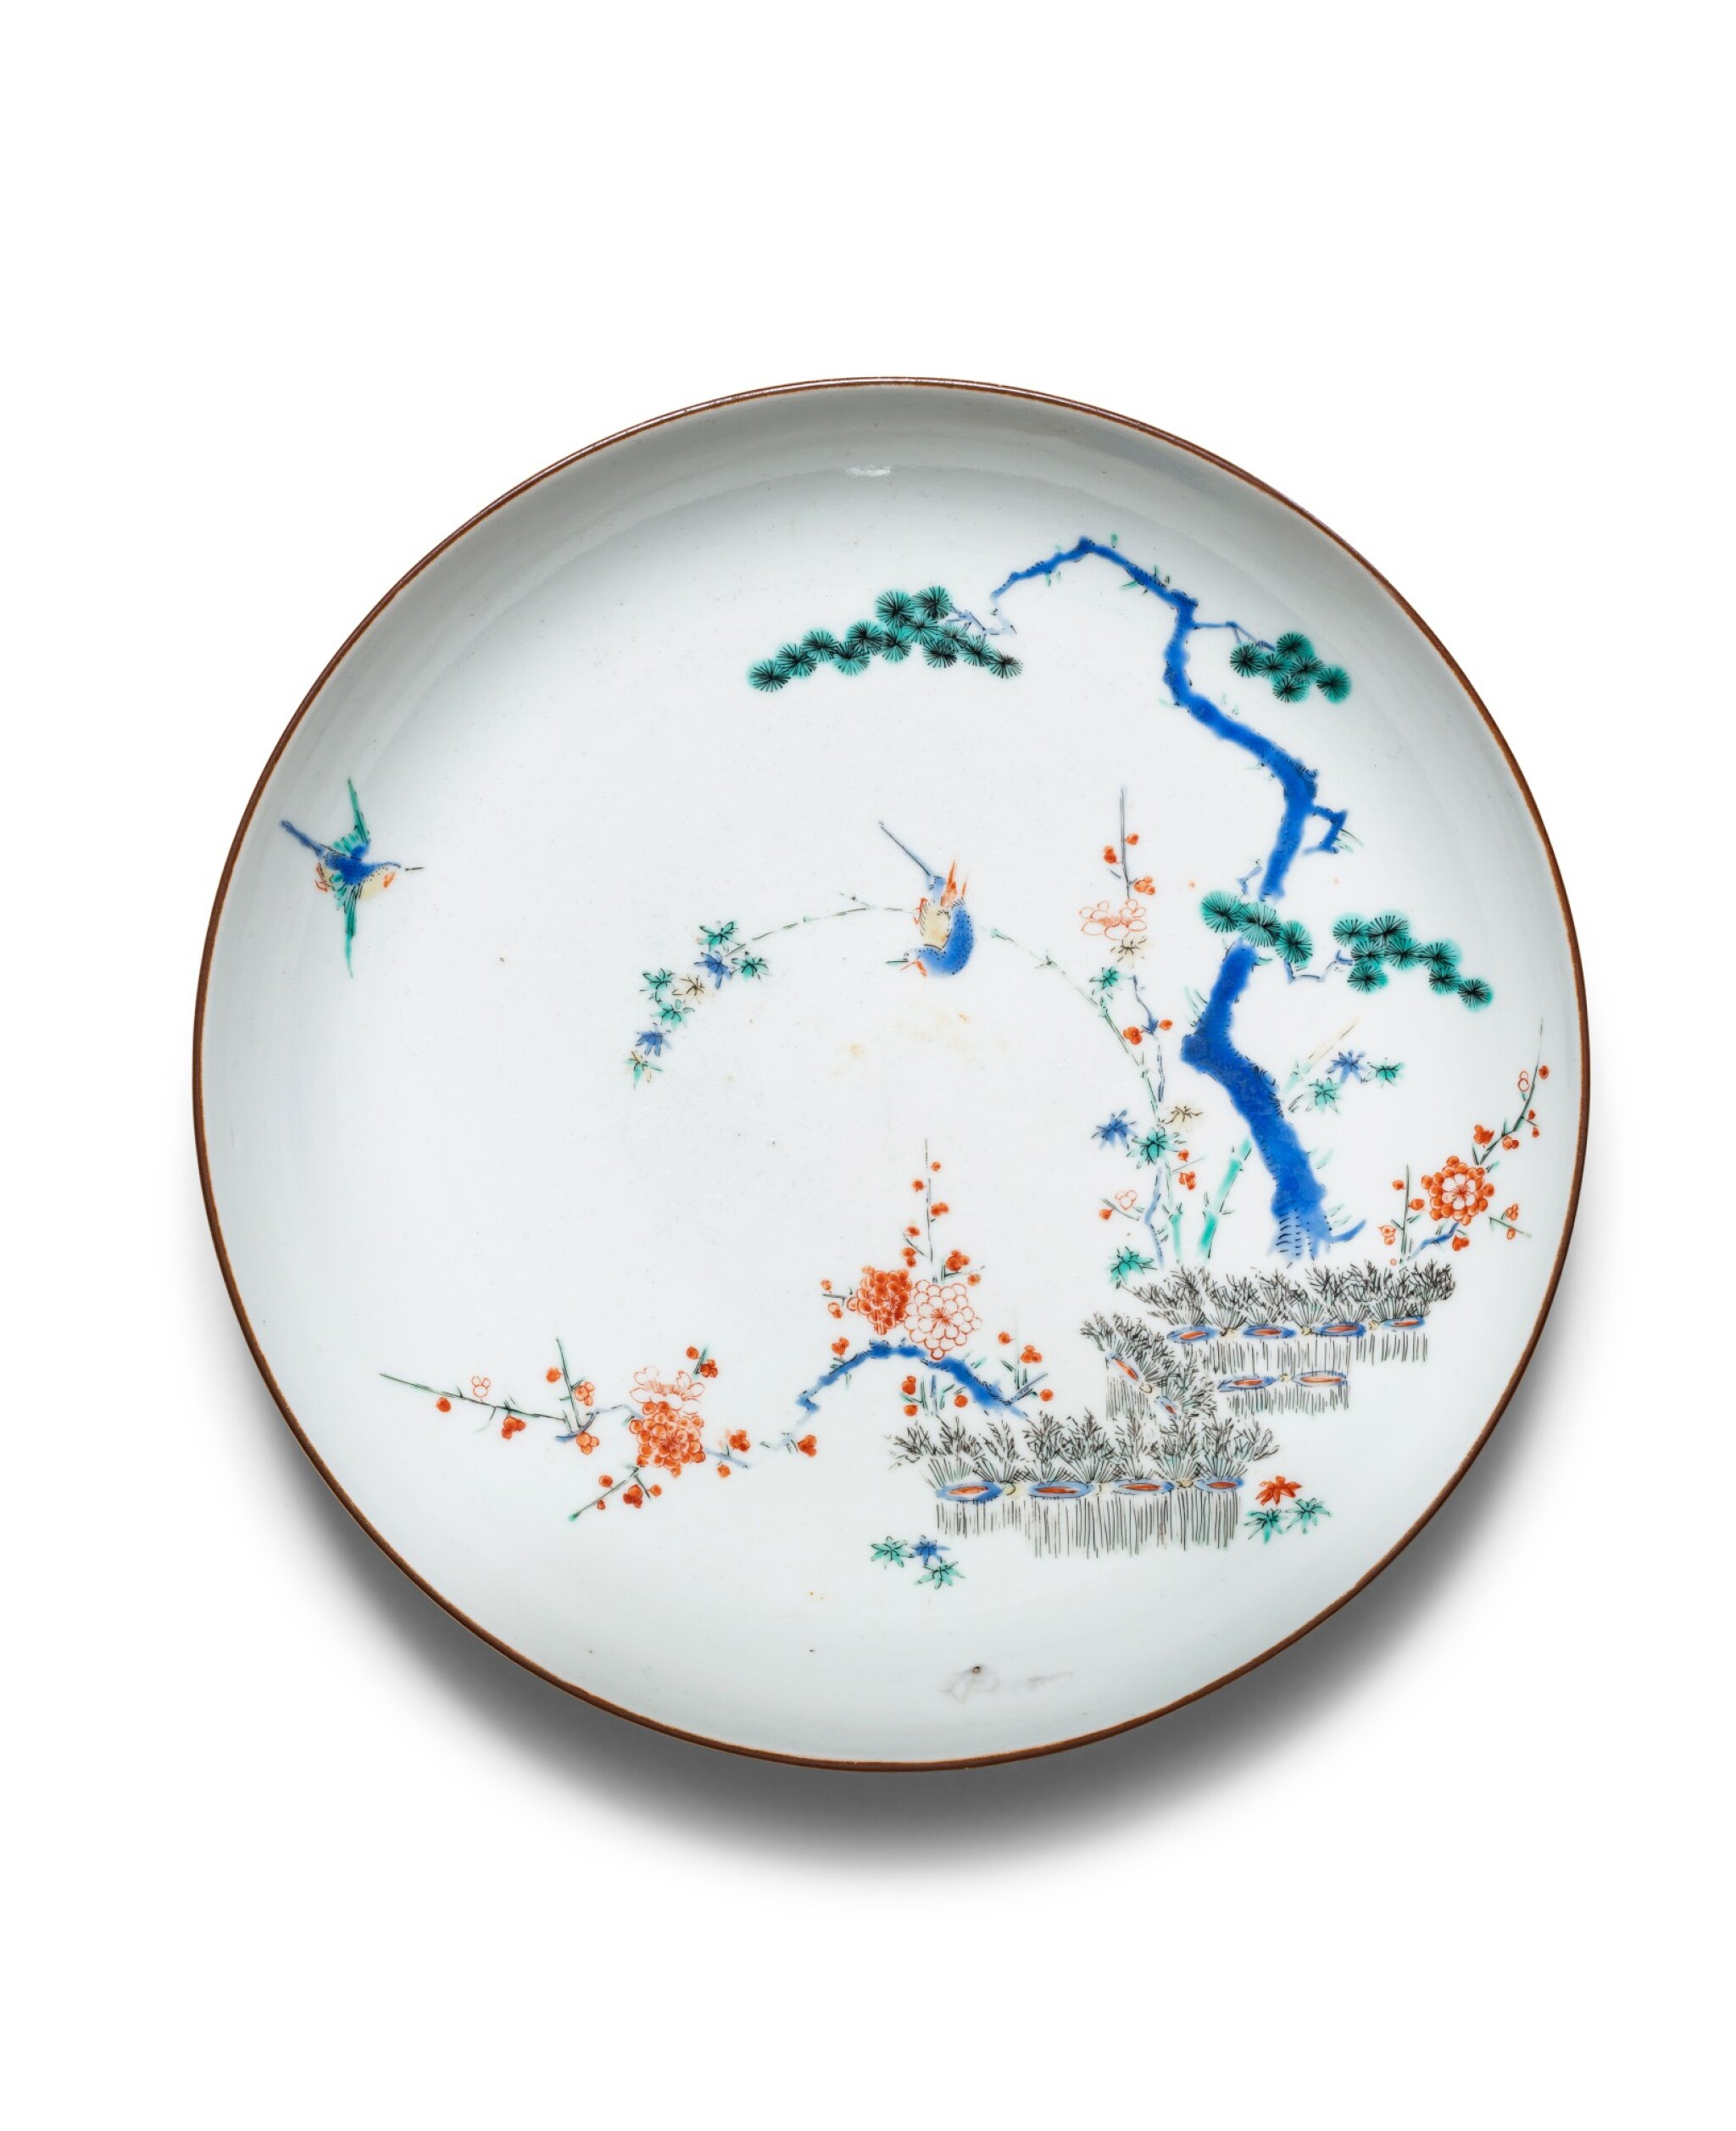 View 1 of Lot 257. Assiette en porcelaine kakiemon Japon, époque Edo, fin du XVIIE siècle | 日本 明治時期 十七世紀晚期 柿右衛門花鳥紋盤 | A kakiemon dish, Japan, Edo period, ca. 1680.